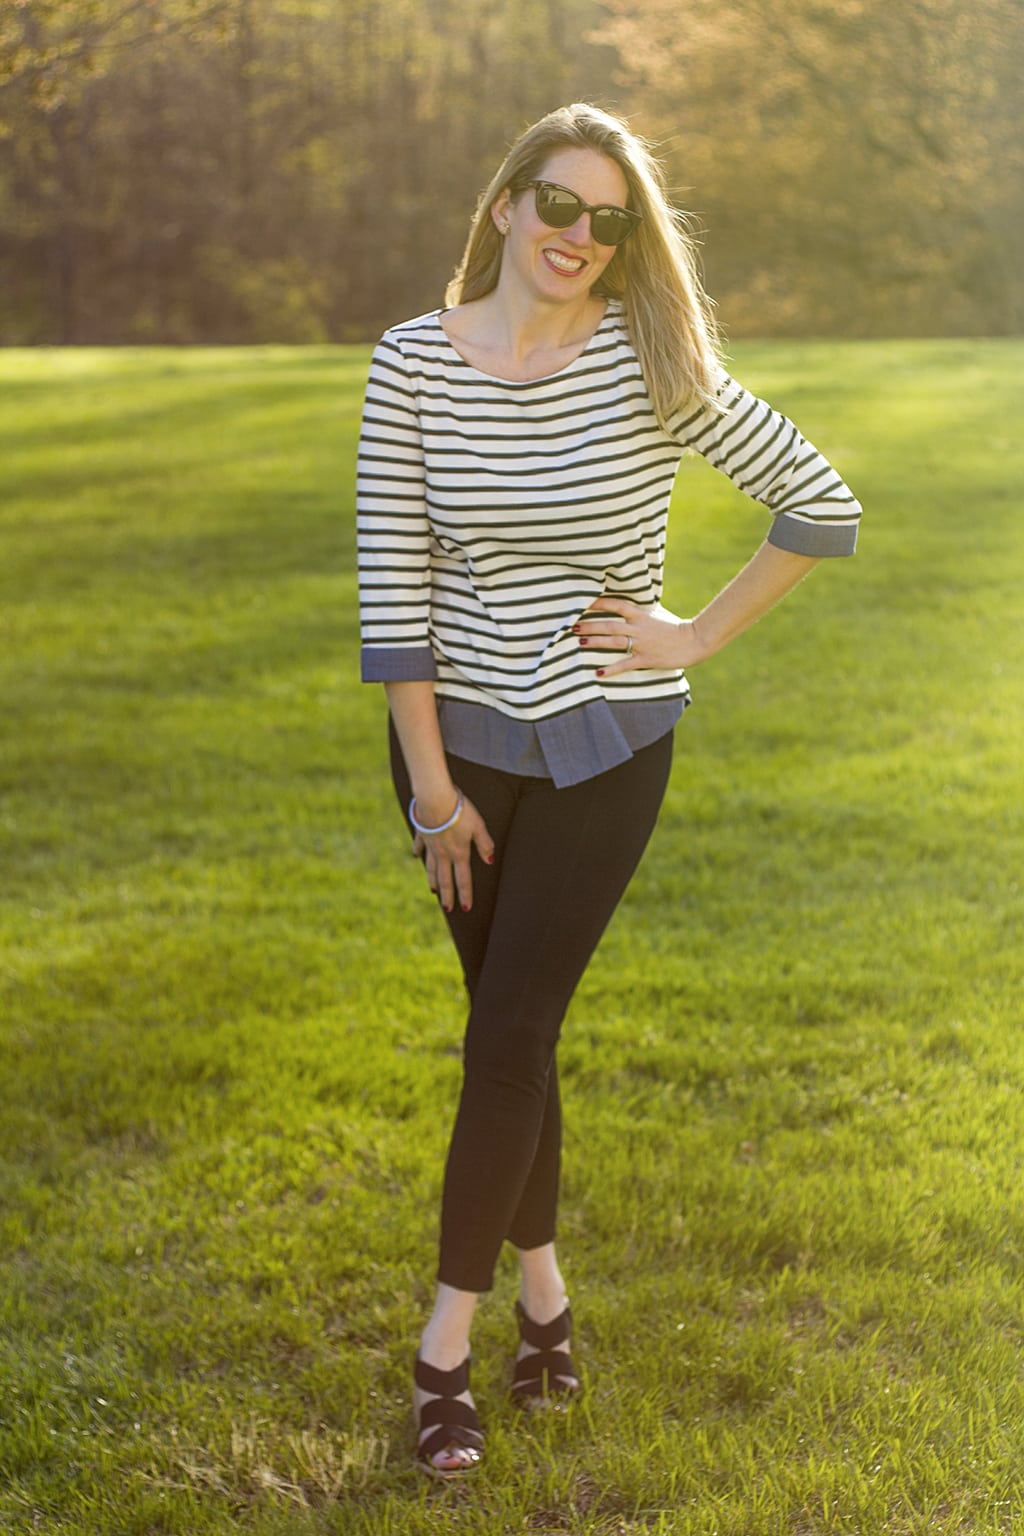 Smiling Stitch Fix